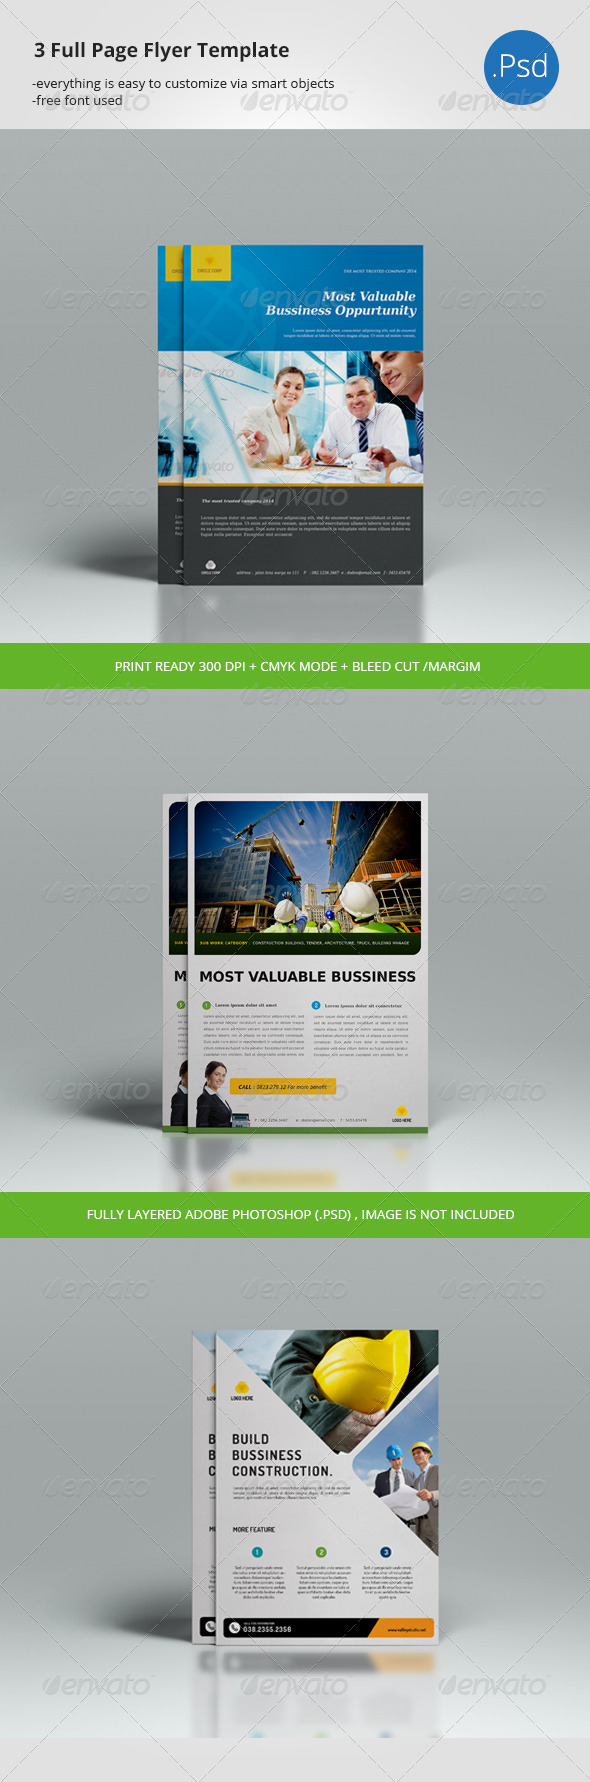 GraphicRiver 3 Page Flyer Template 7770812